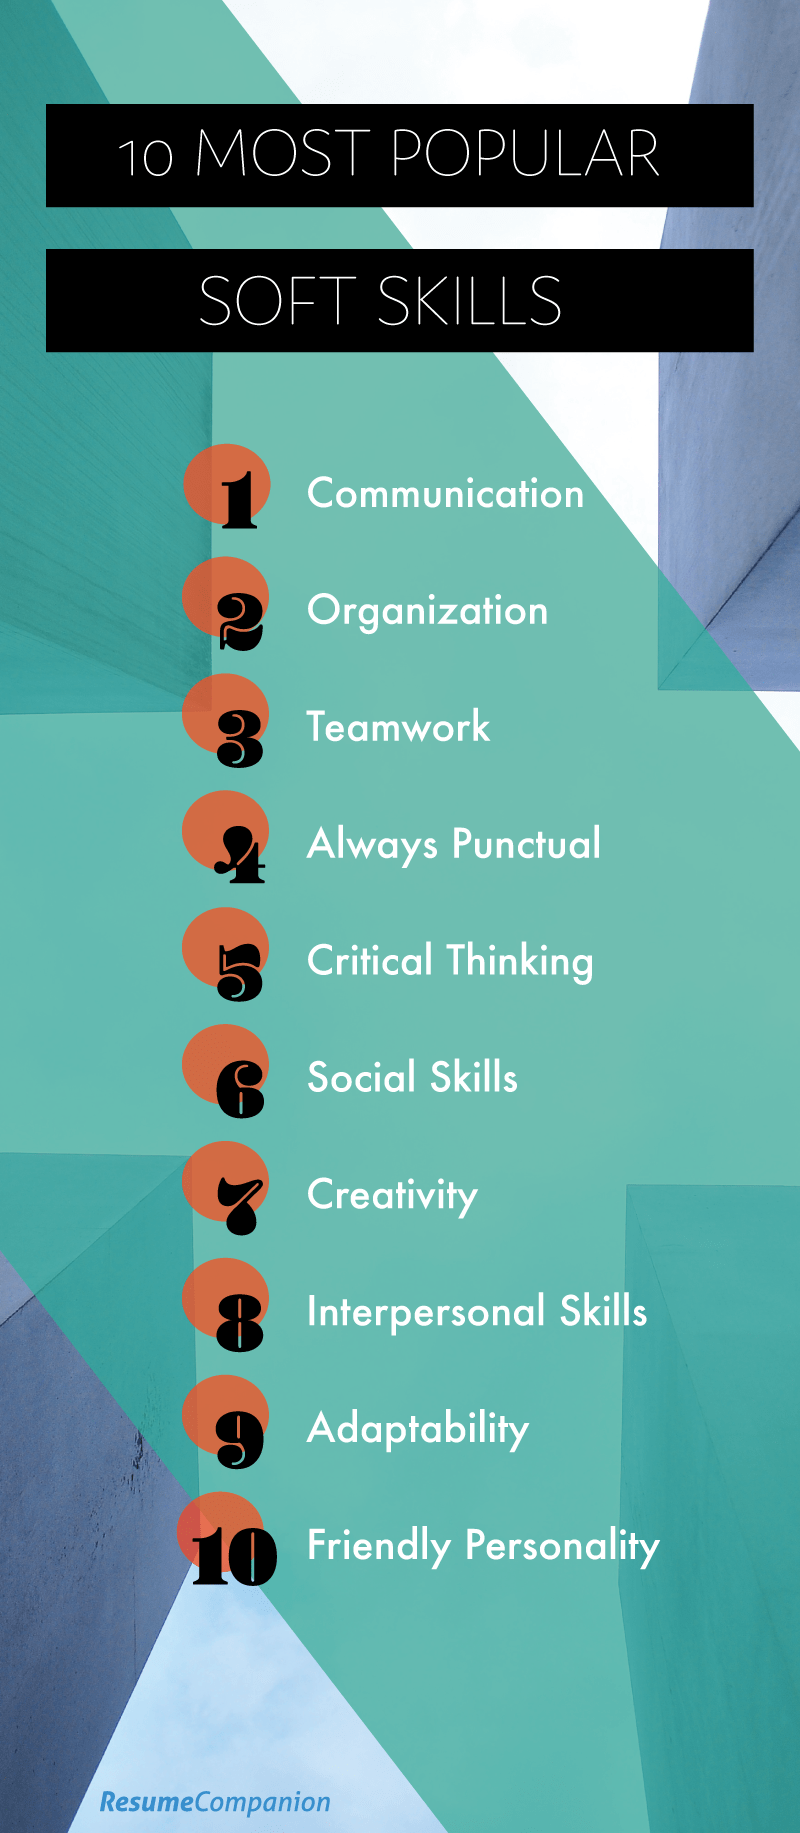 Top 10 Soft Skills For A Resume Employers Look For Infographic  Soft Skills List